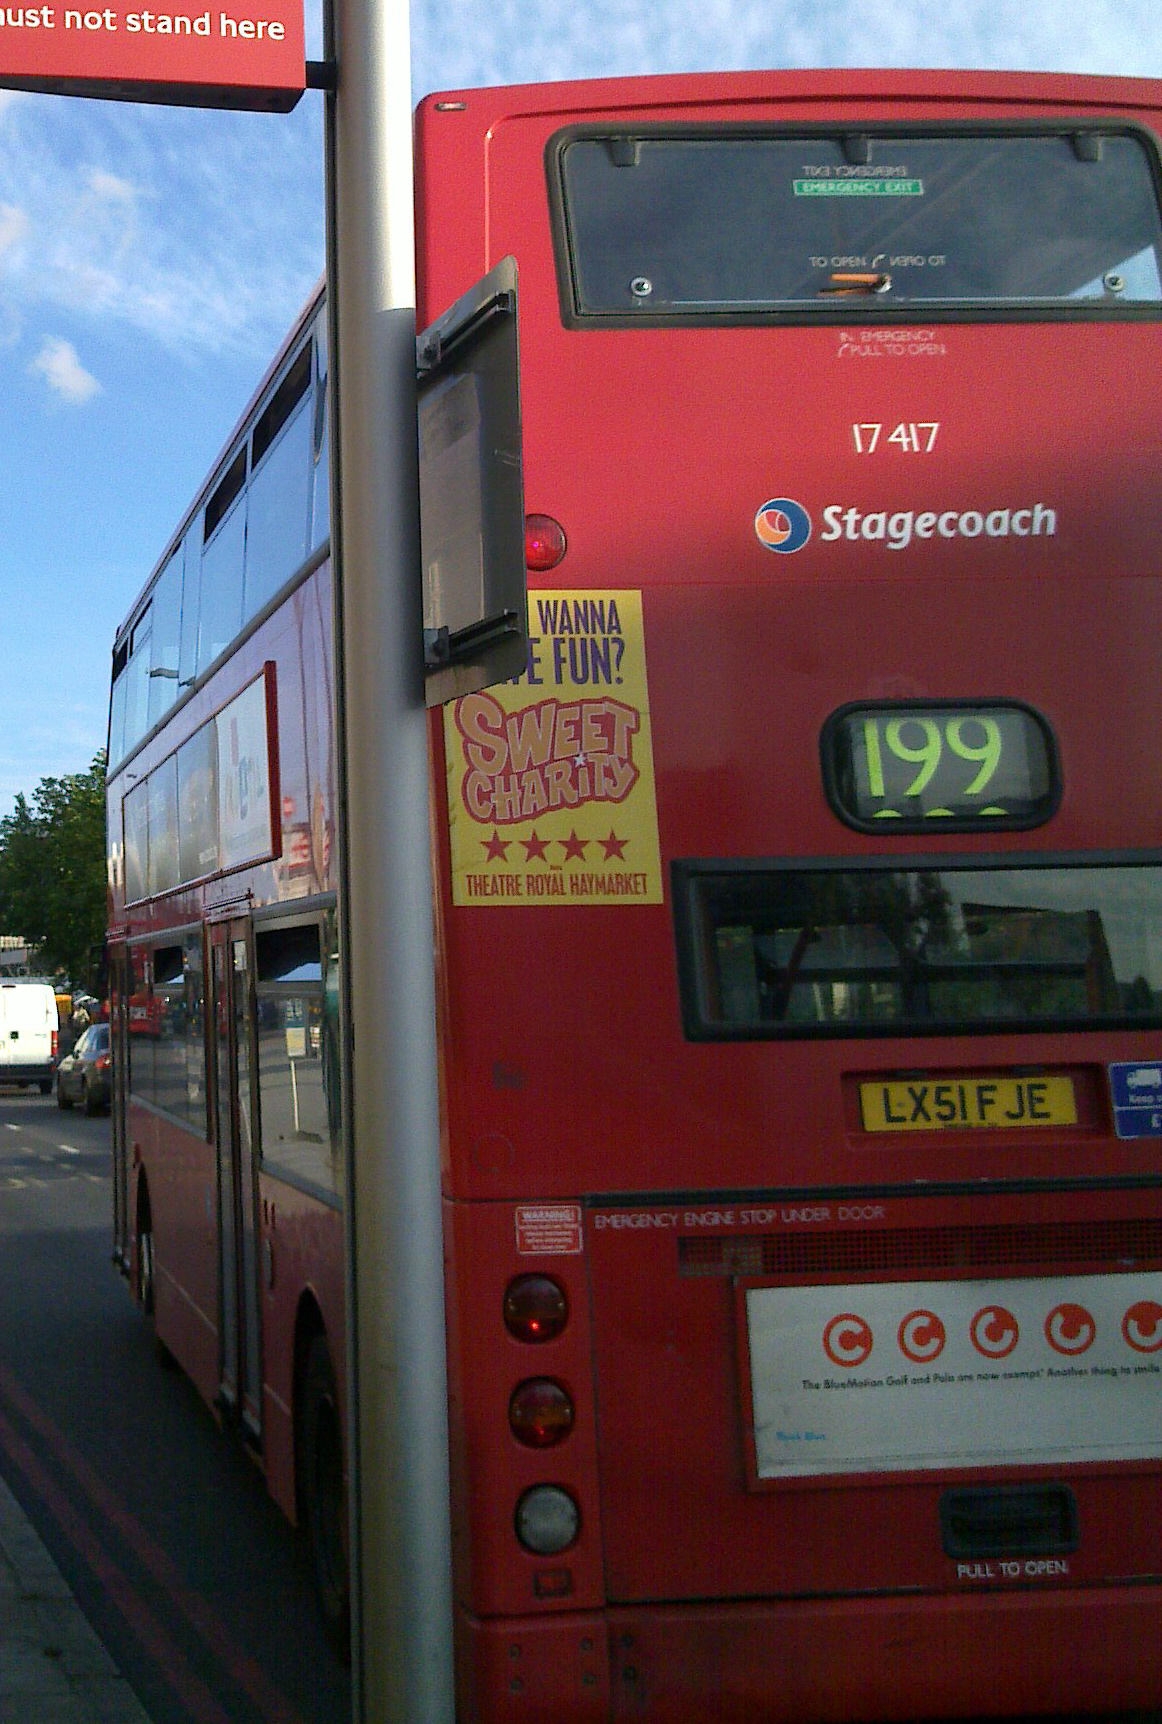 File Stagecoach East London Bus 17417 Lx51 Fje 2001